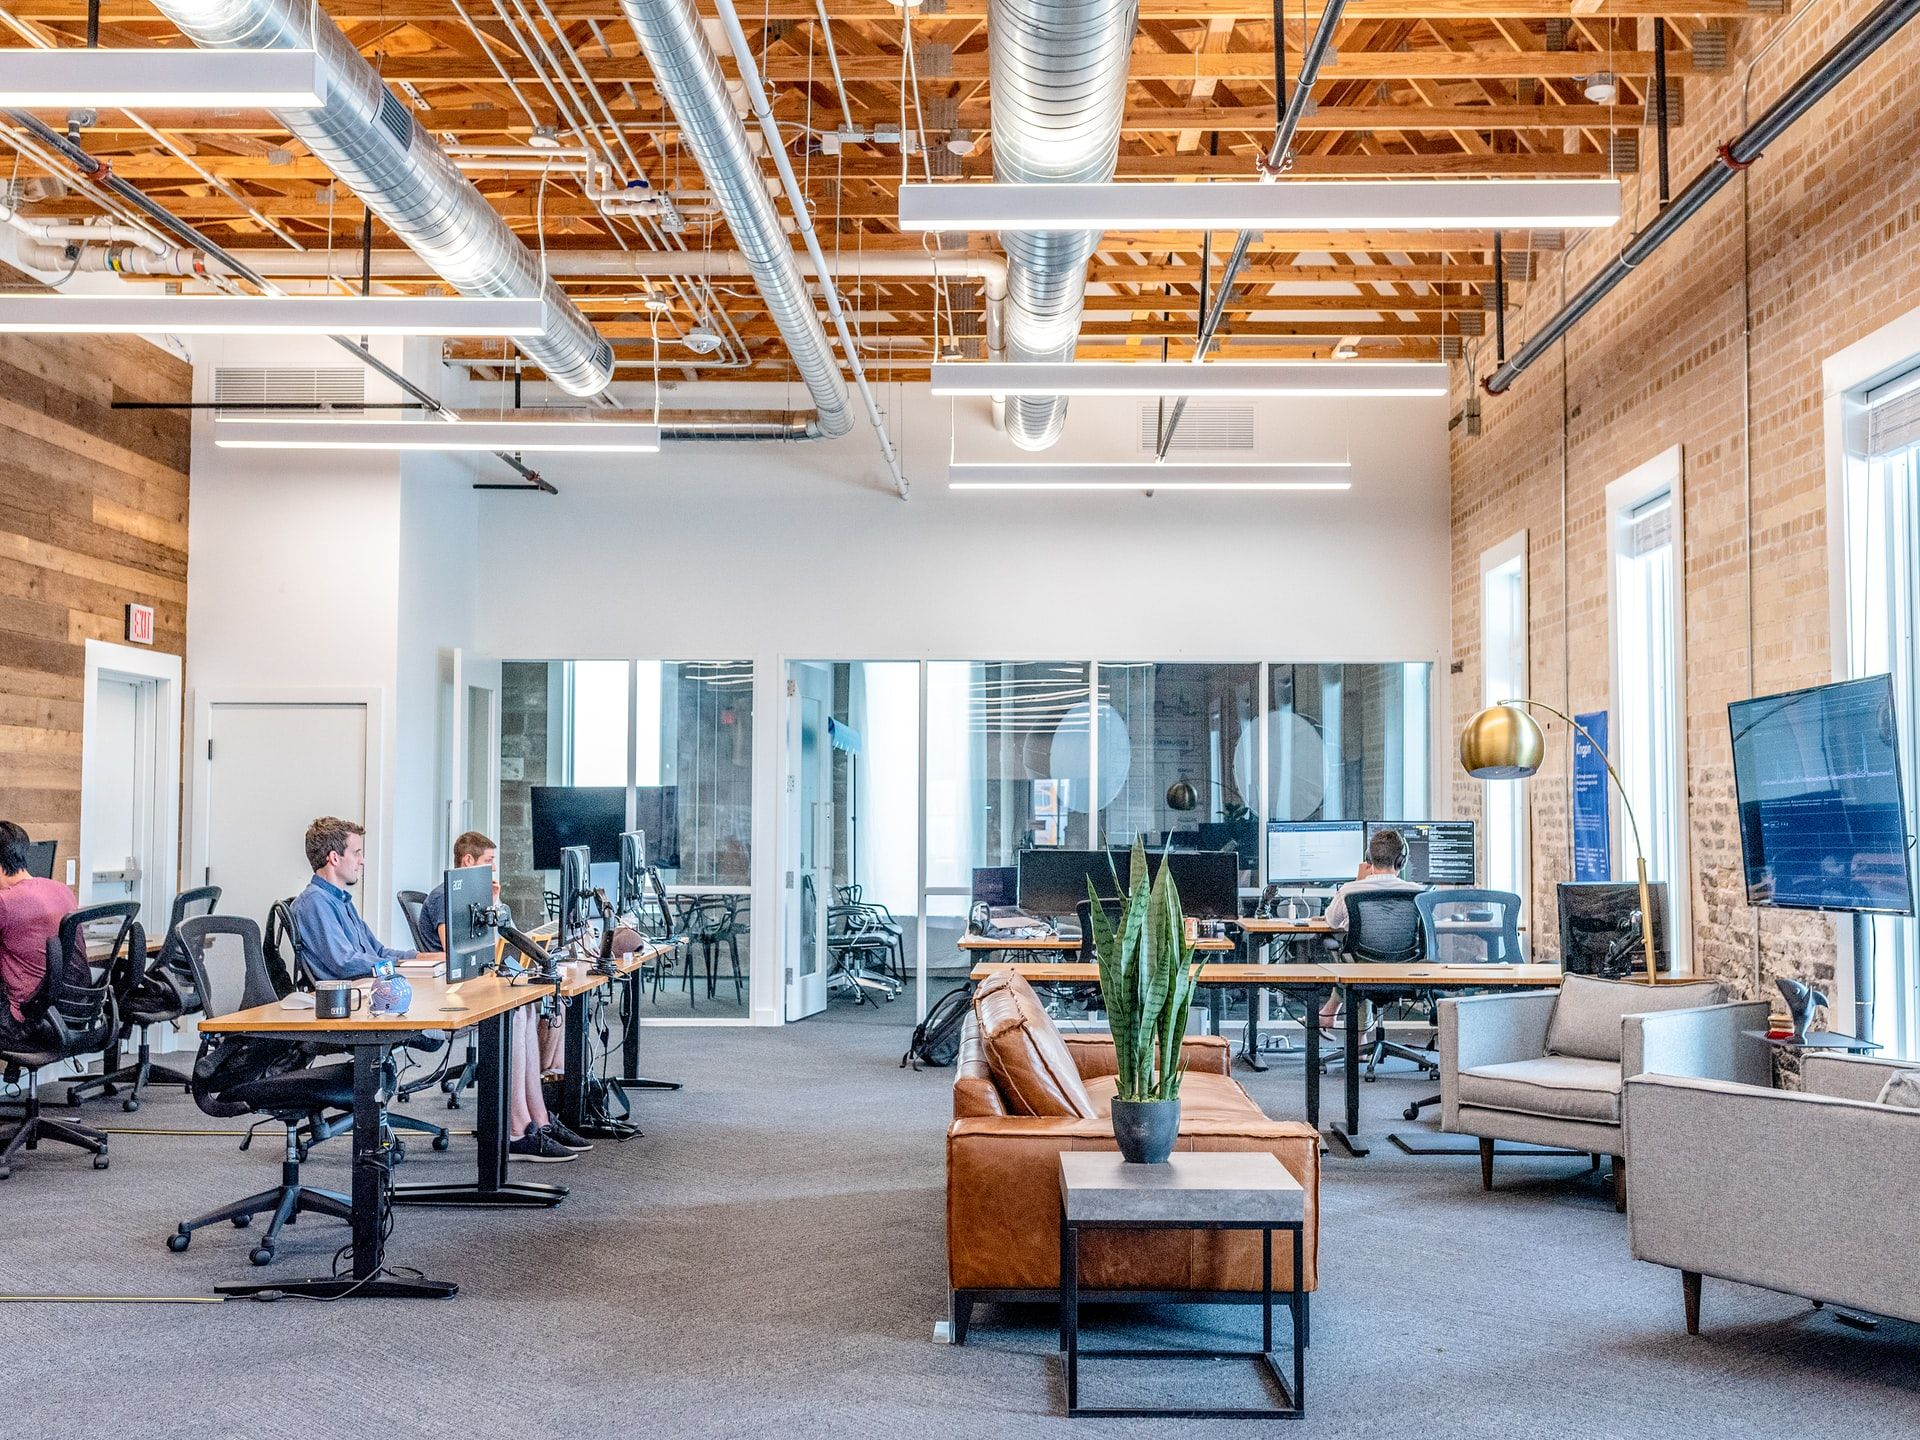 IWG Says Demand for Office Space Rising as UK Companies Plan for Hybrid Working